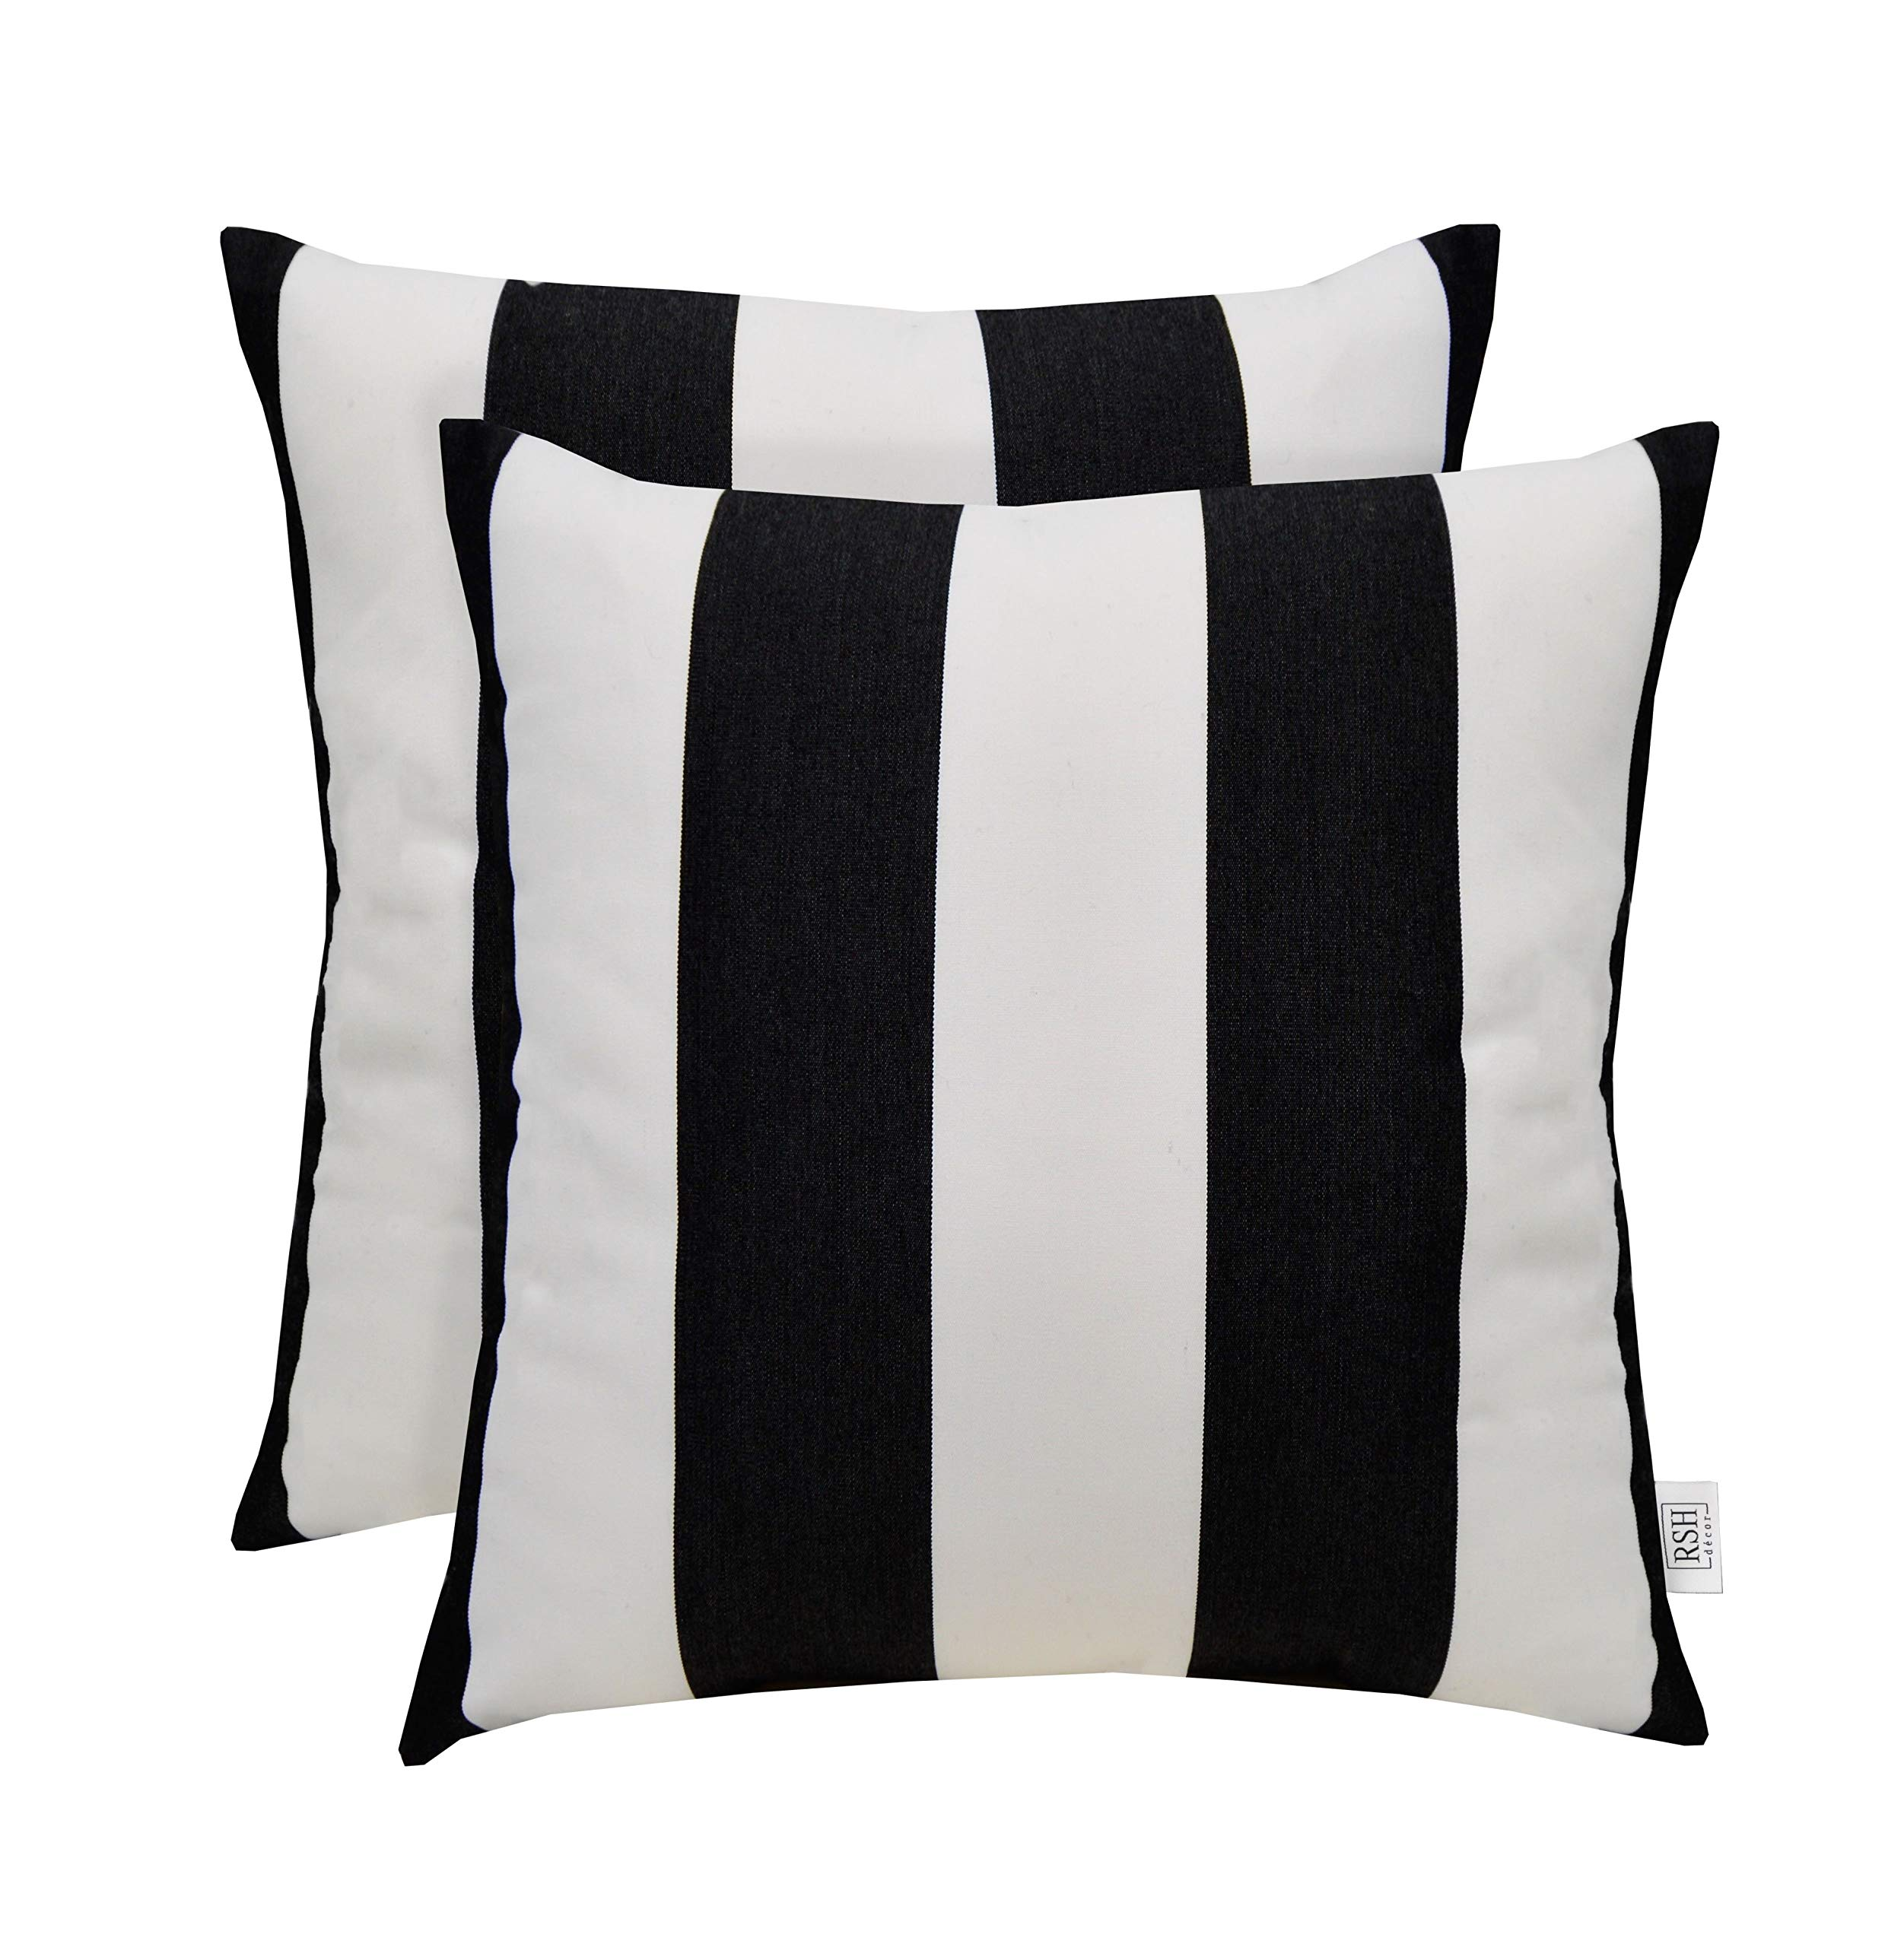 Sunbrella Set of 2 Black and White Stripe - In/Outdoor Square Throw/Toss Pillows (24'' x 24'')